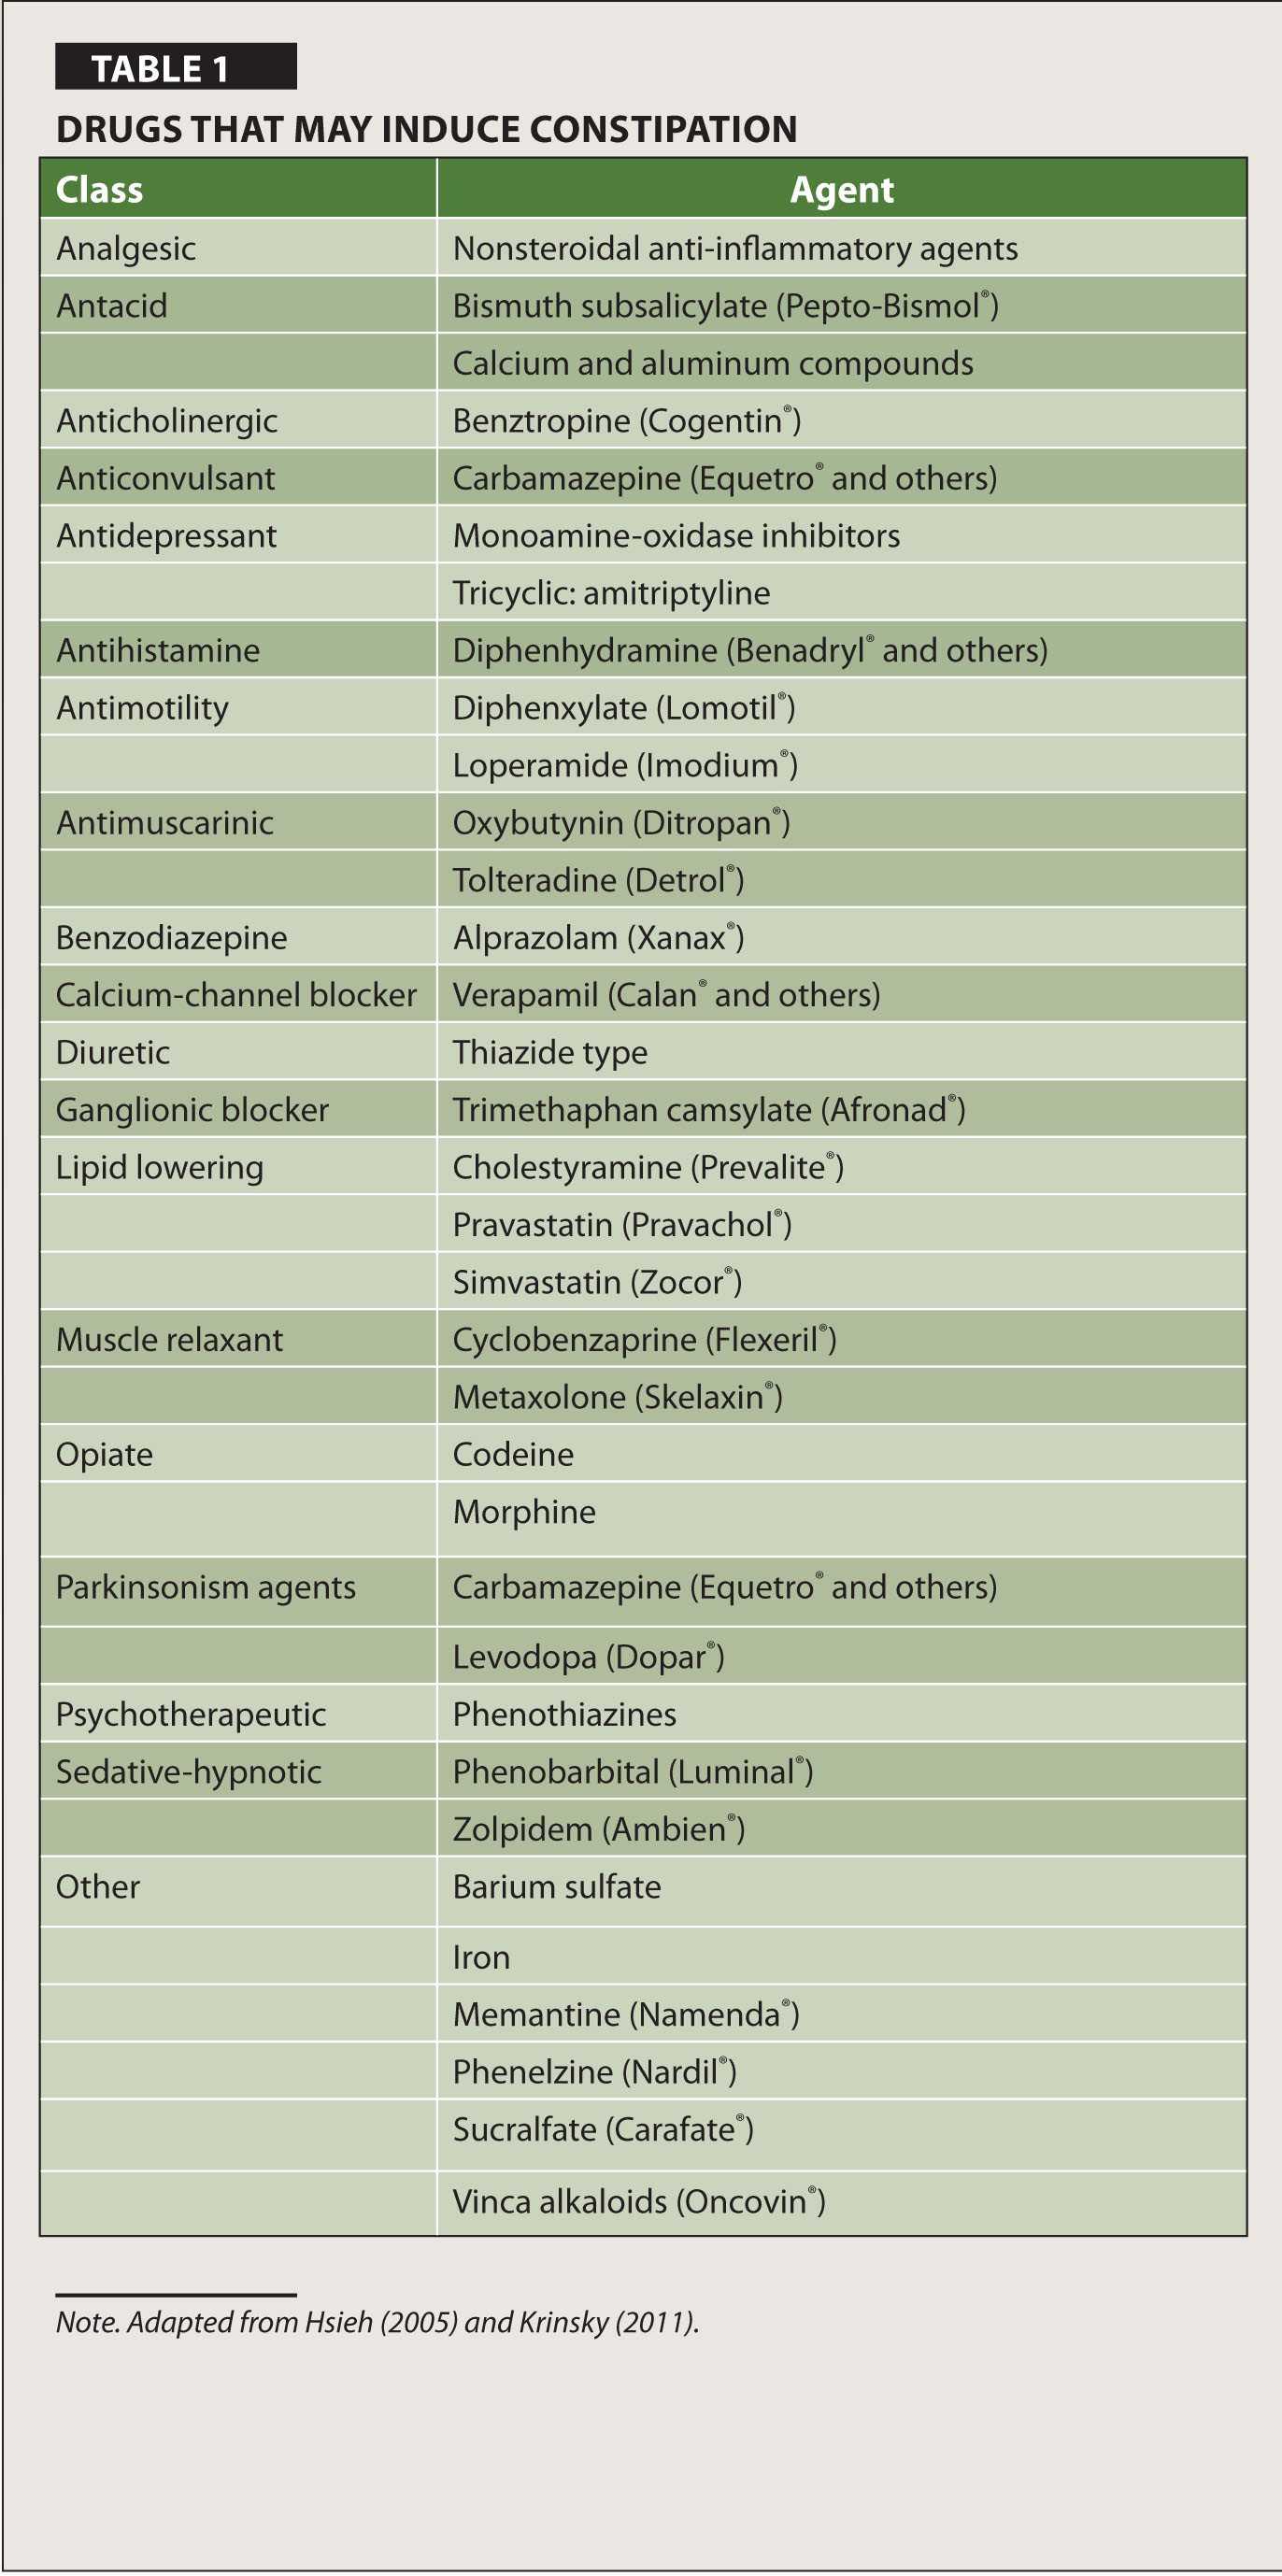 Drugs That May Induce Constipation